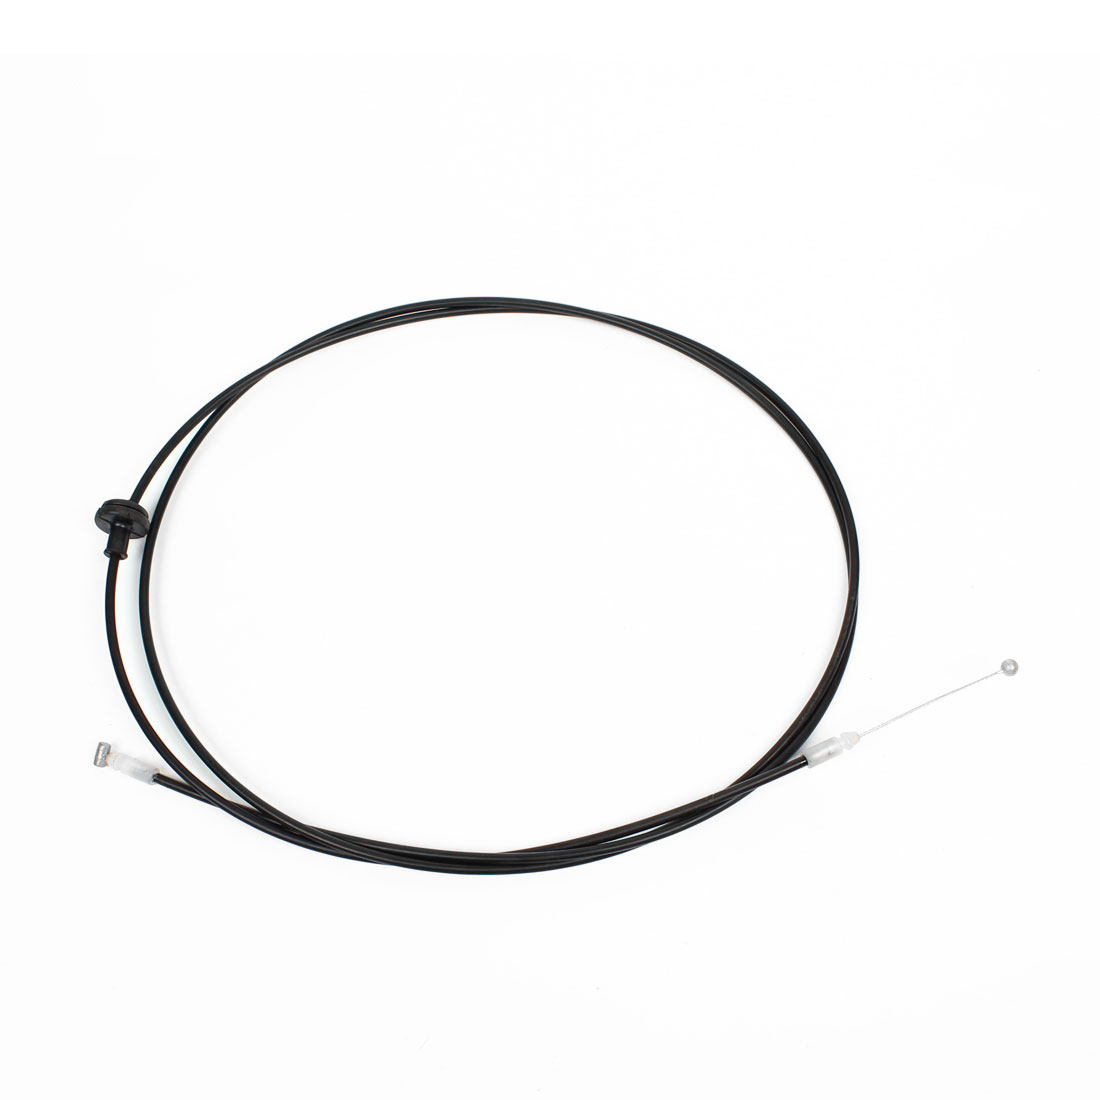 Auto Car Spare Parts Front Hood Engine Lid Release Cable Wire 74130-S84-A01